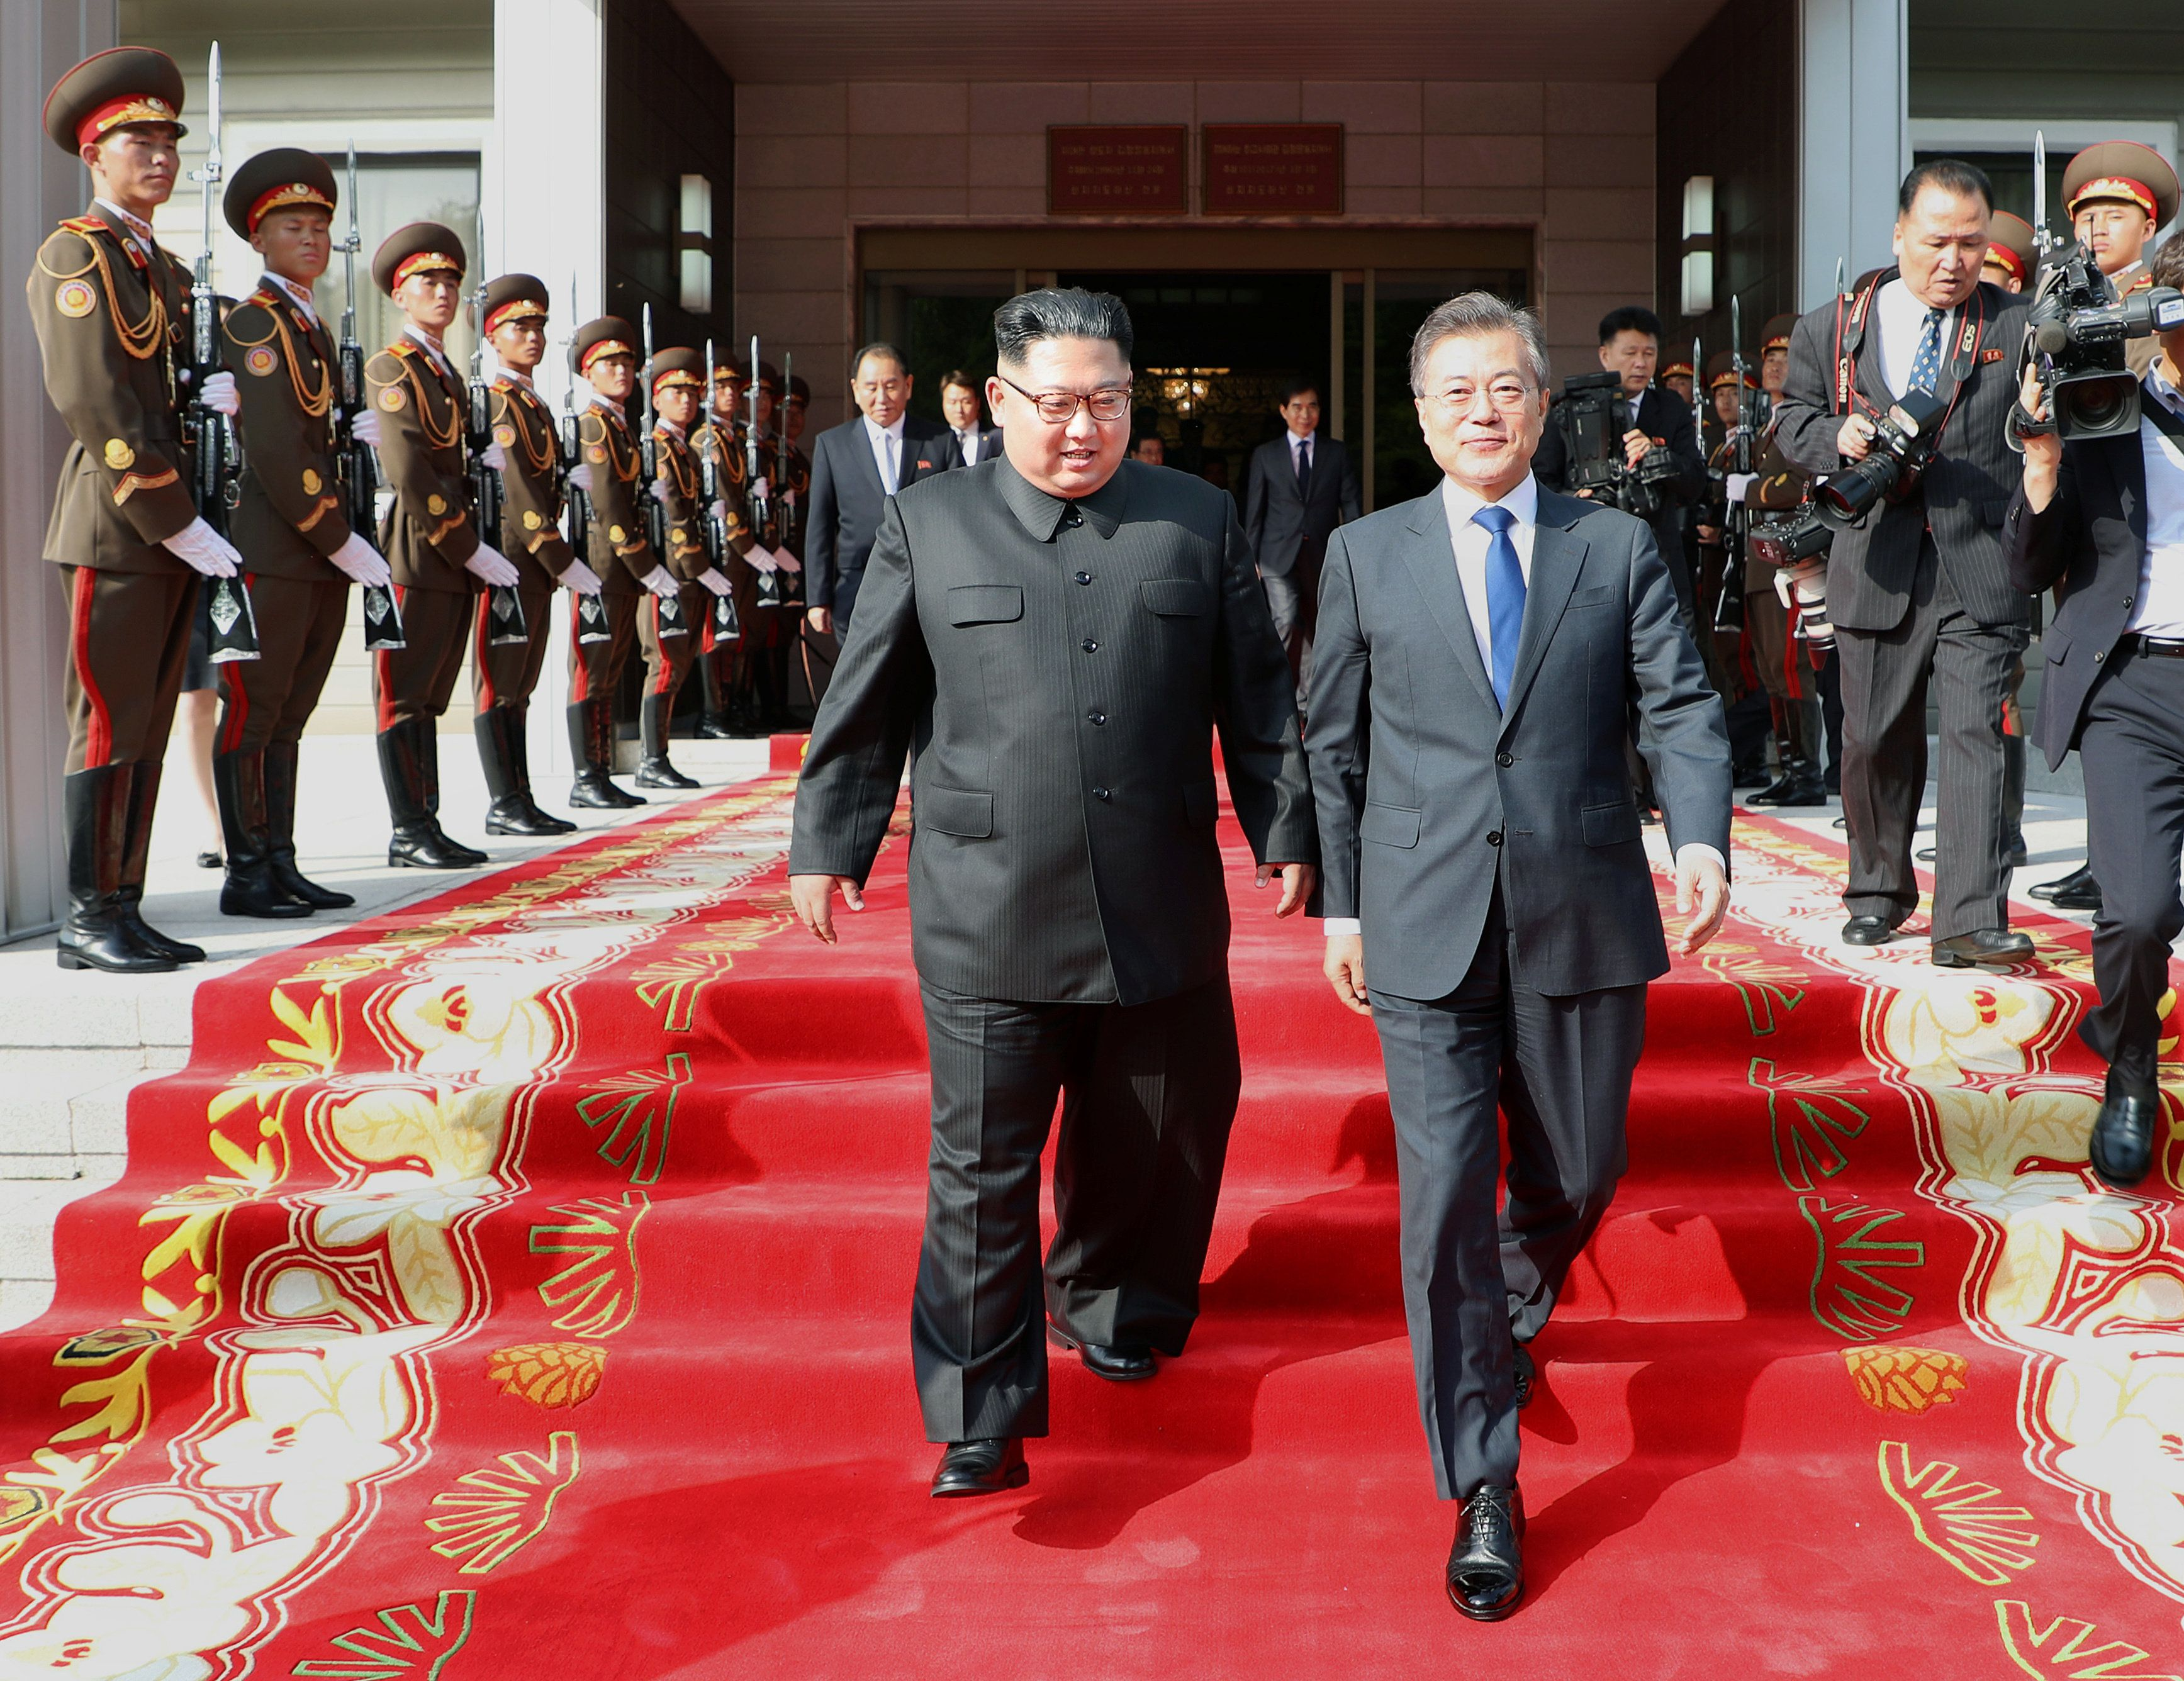 South Korean President Moon Jae-in and North Korean leader Kim Jong Un leave after their summit at the truce village of Panmunjom, North Korea, in this handout picture provided by the Presidential Blue House on May 26, 2018. Picture taken on May 26, 2018.     The Presidential Blue House /Handout via REUTERS ATTENTION EDITORS - THIS IMAGE WAS PROVIDED BY A THIRD PARTY